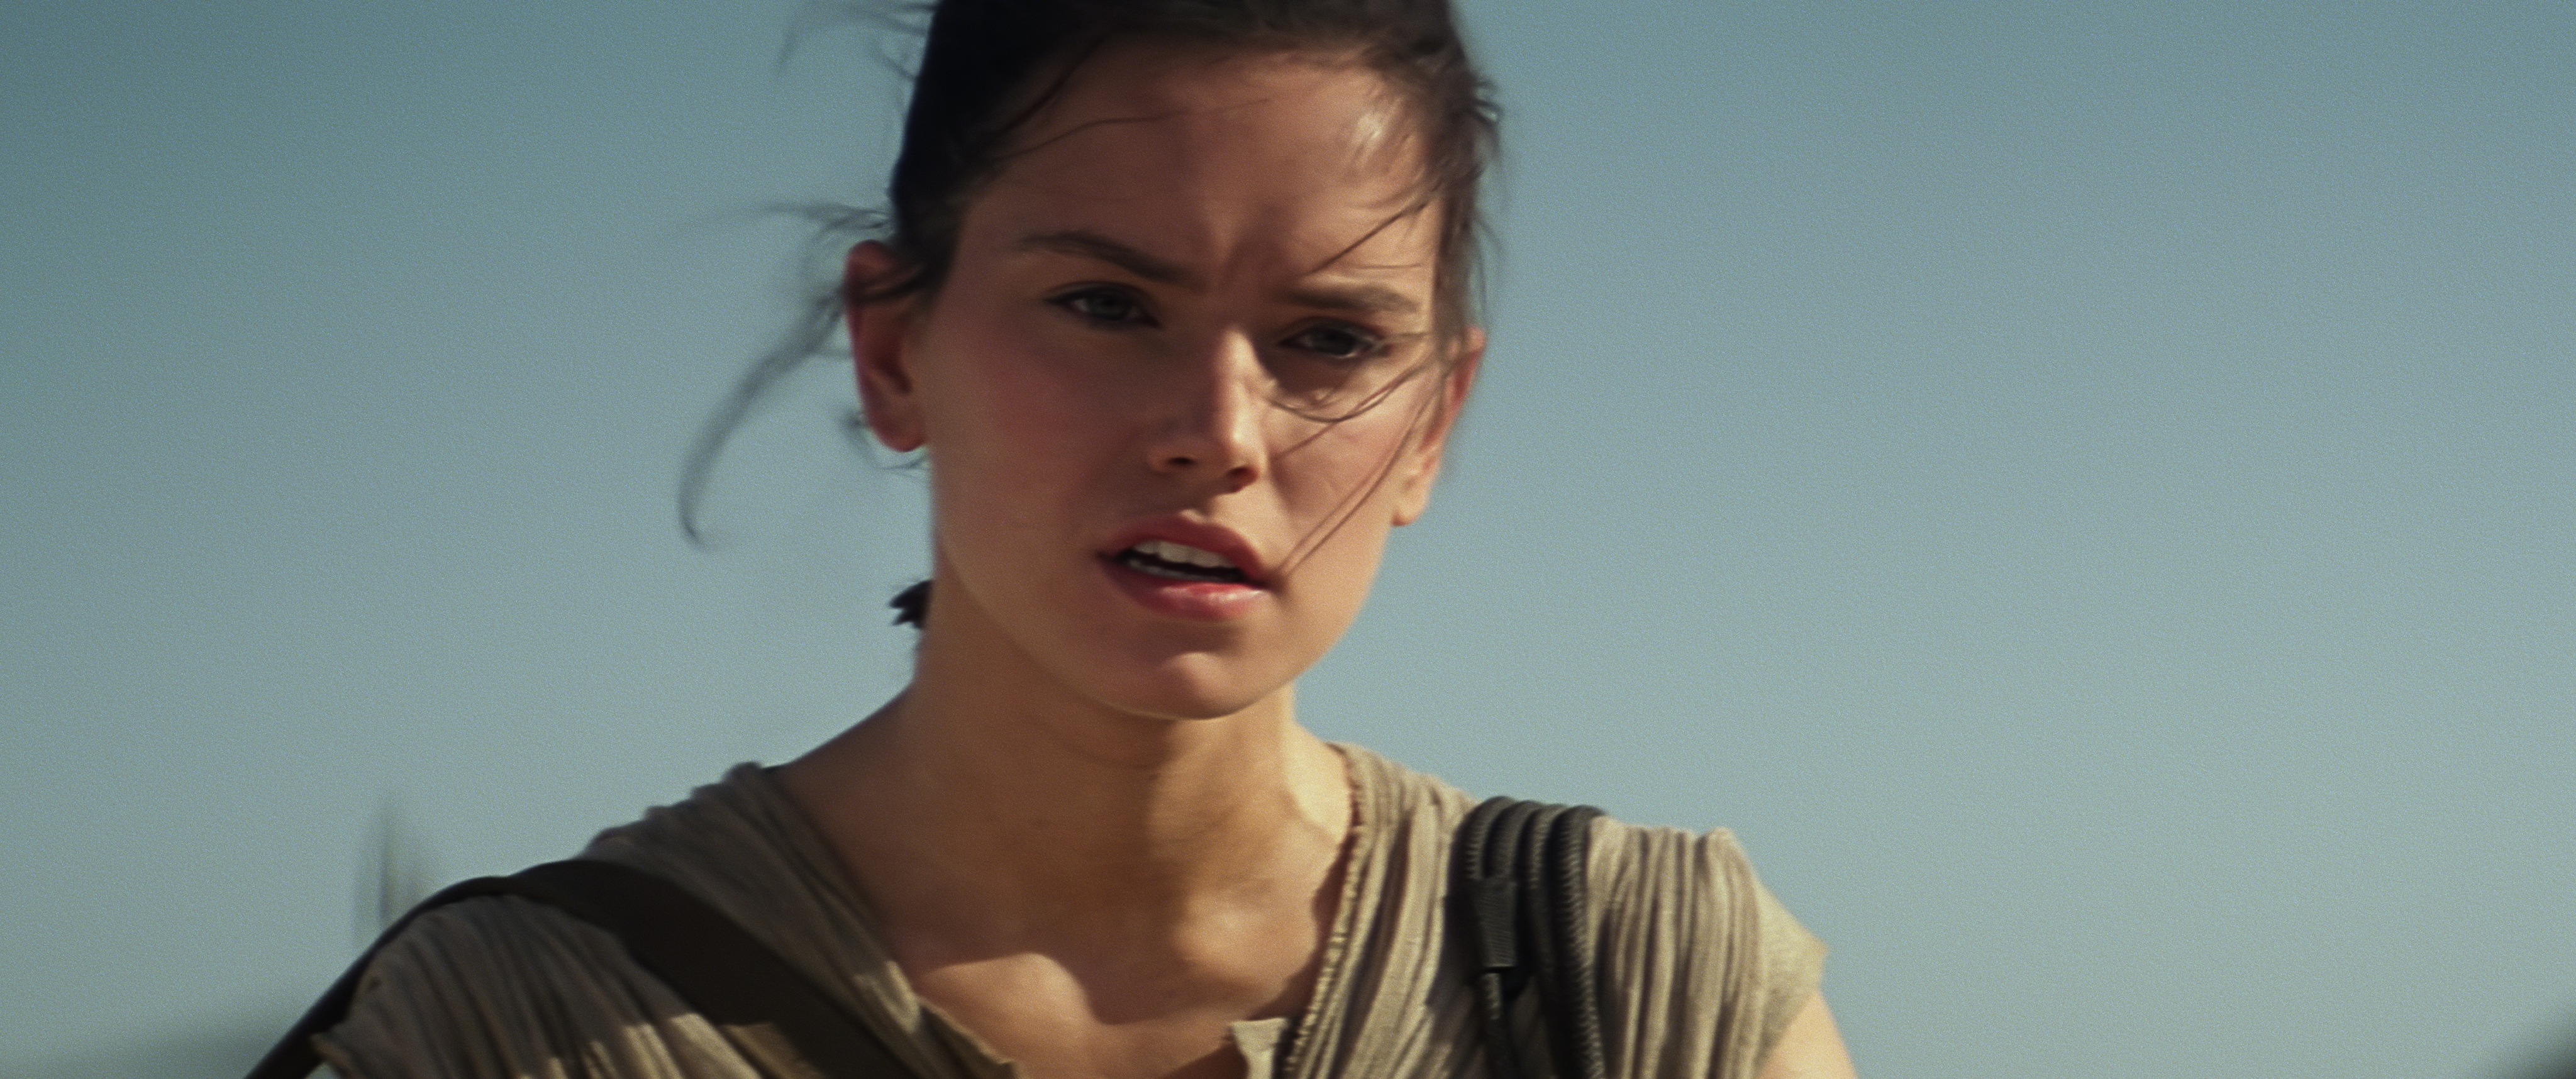 Back to Article 15 New Star Wars The Force Awakens Images 4096x1716